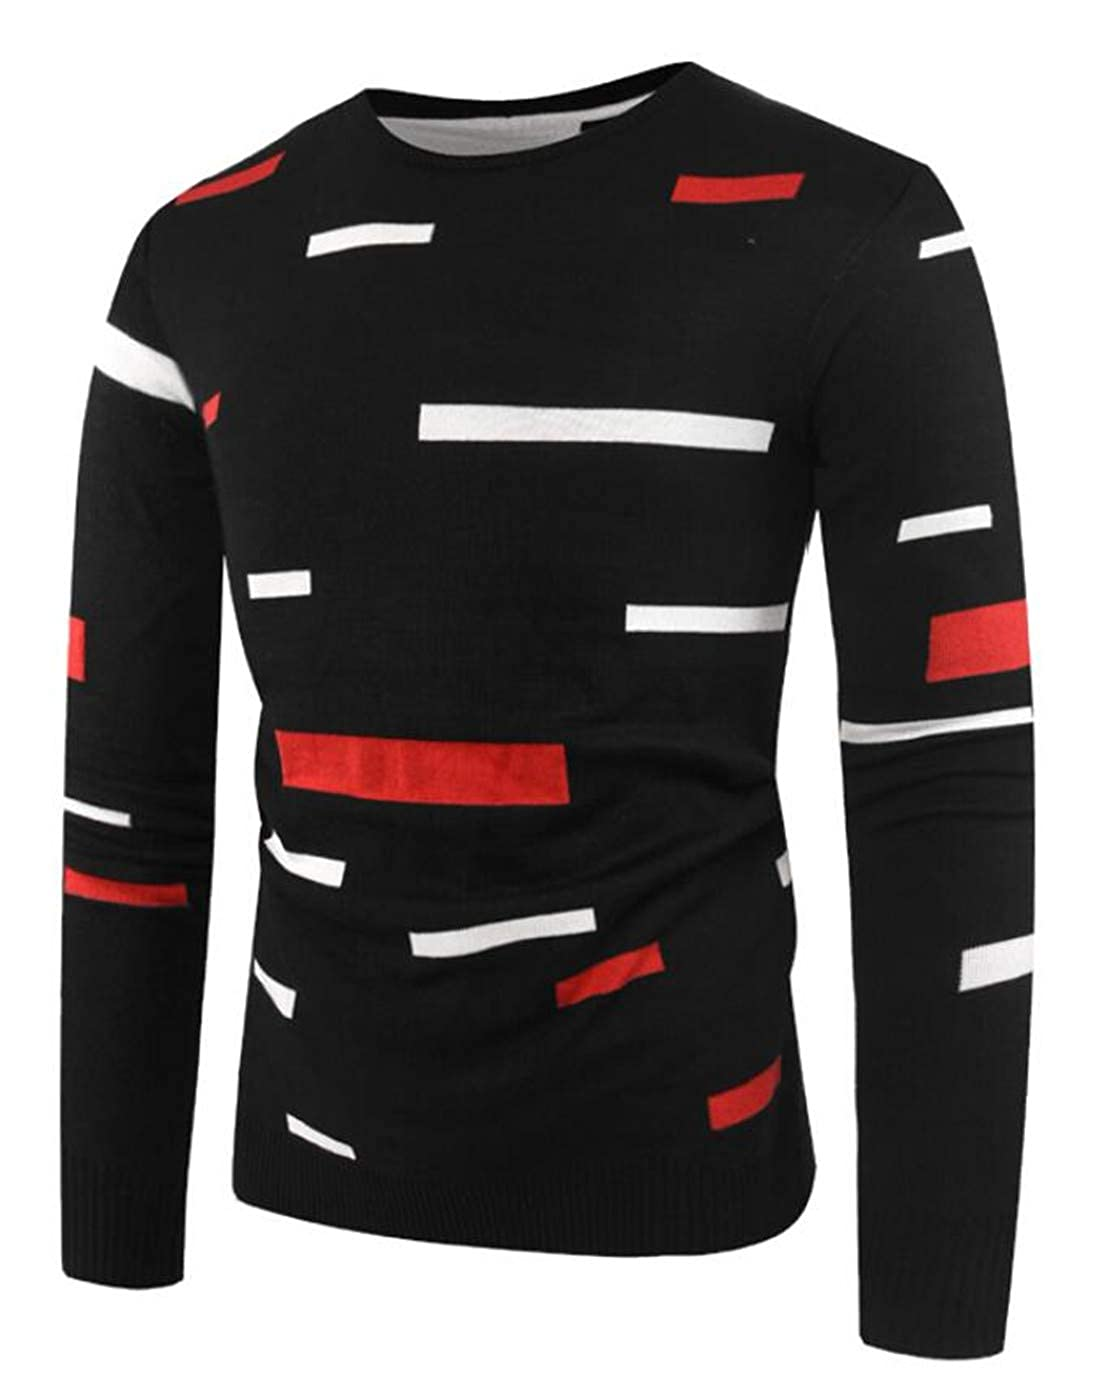 Nanquan Men Long Sleeve Hollow Out Contrast Slim Fit Sweater Pullover